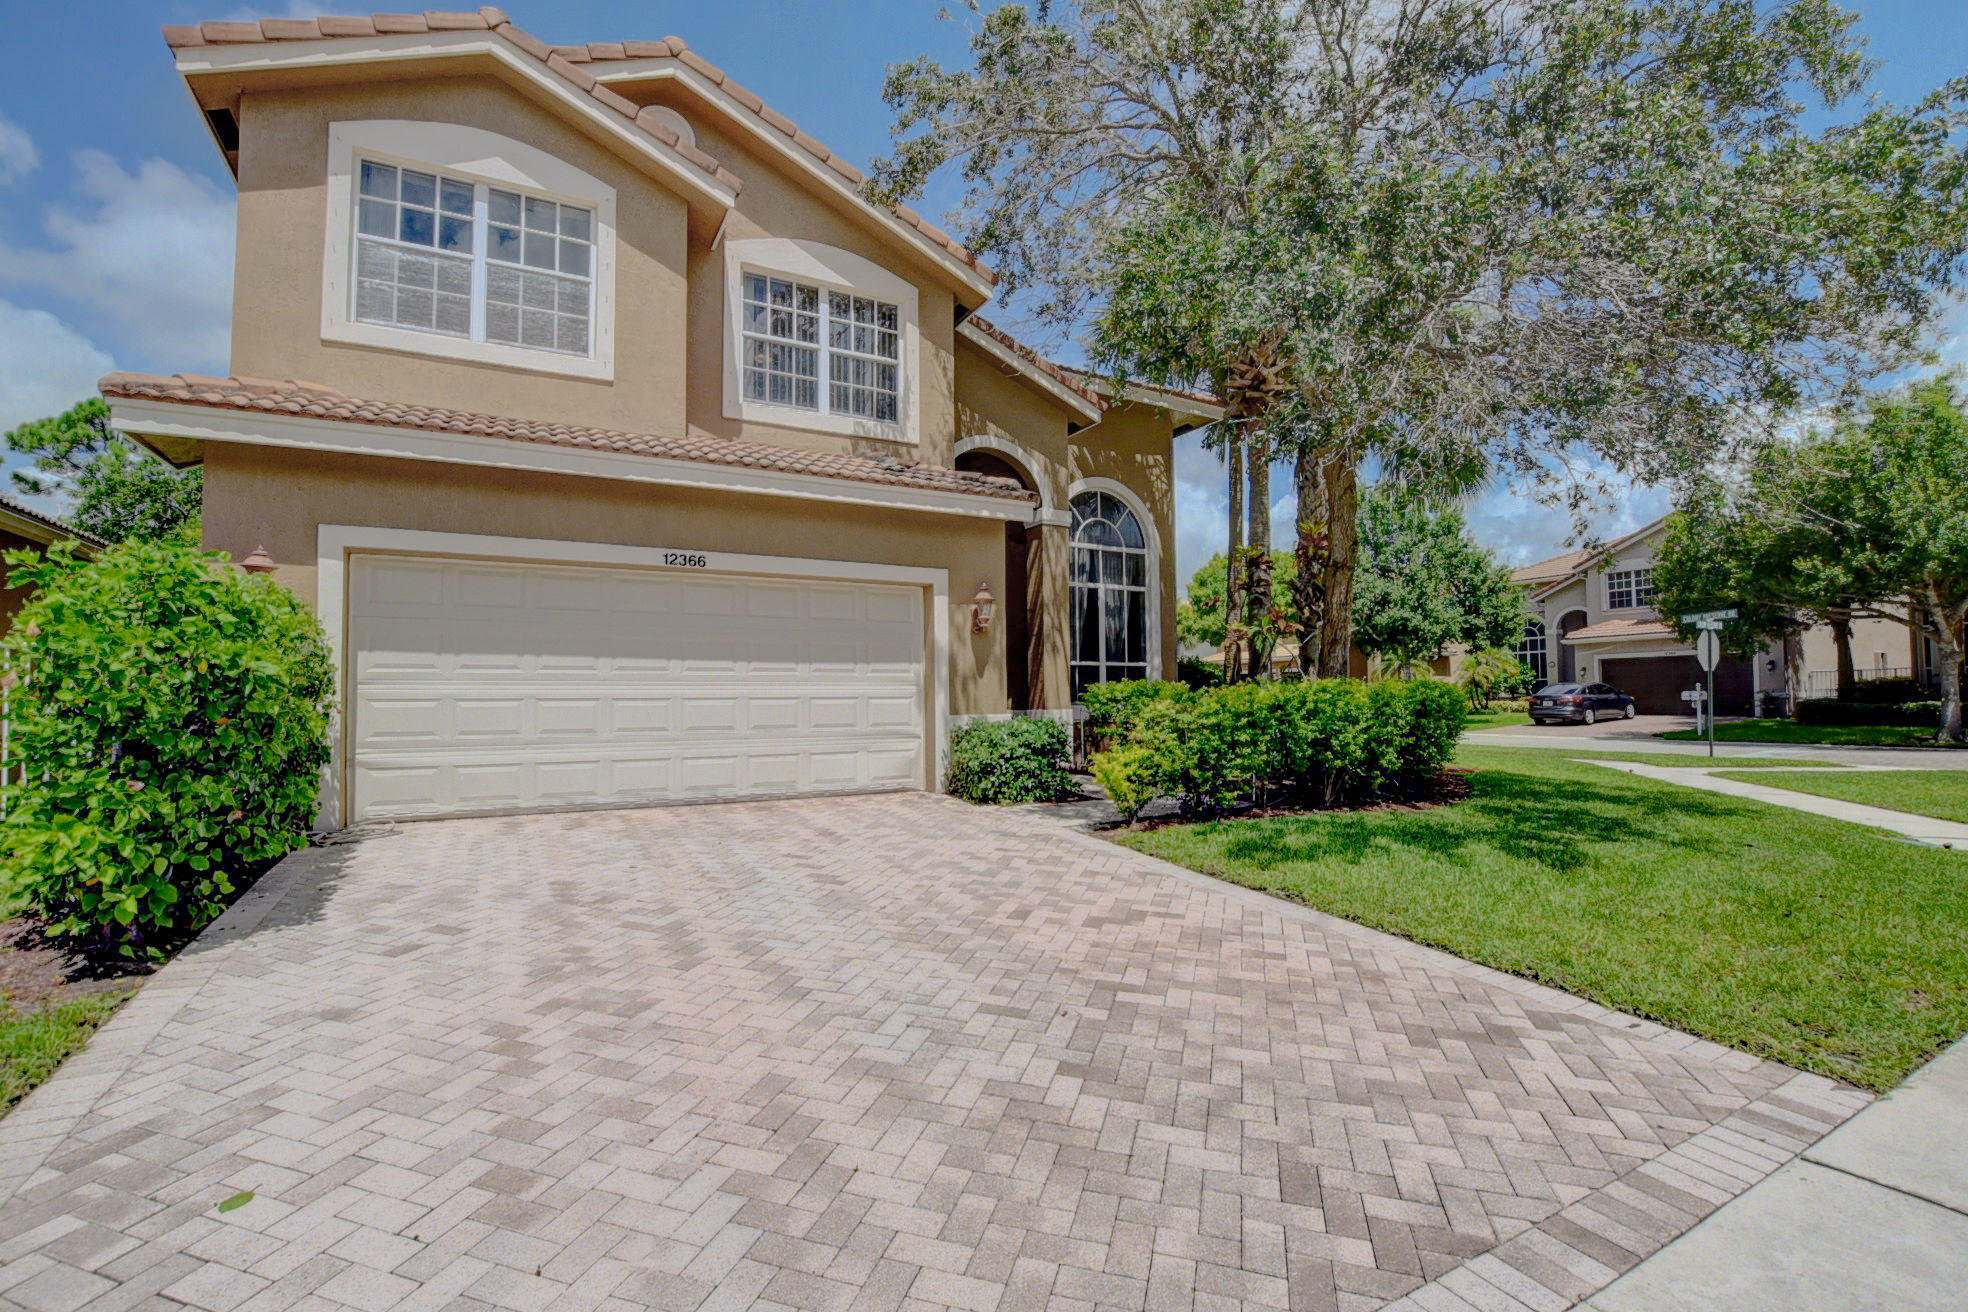 Details for 12366 Colony Preserve Drive, Boynton Beach, FL 33436